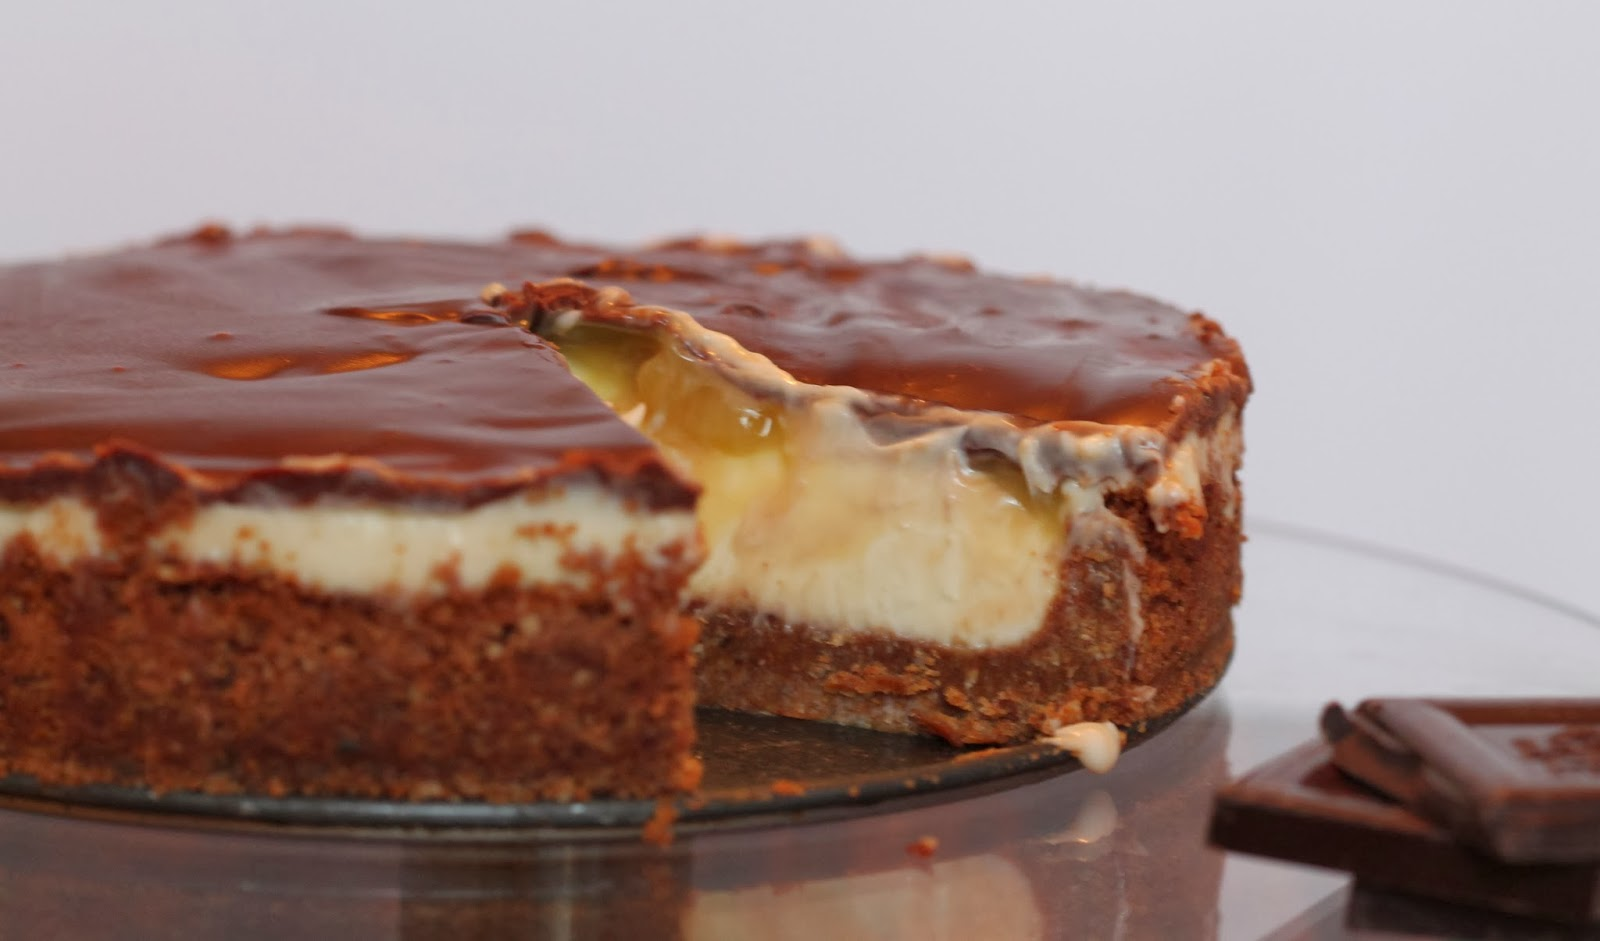 Lemon curd and chocolate cheesecake pie